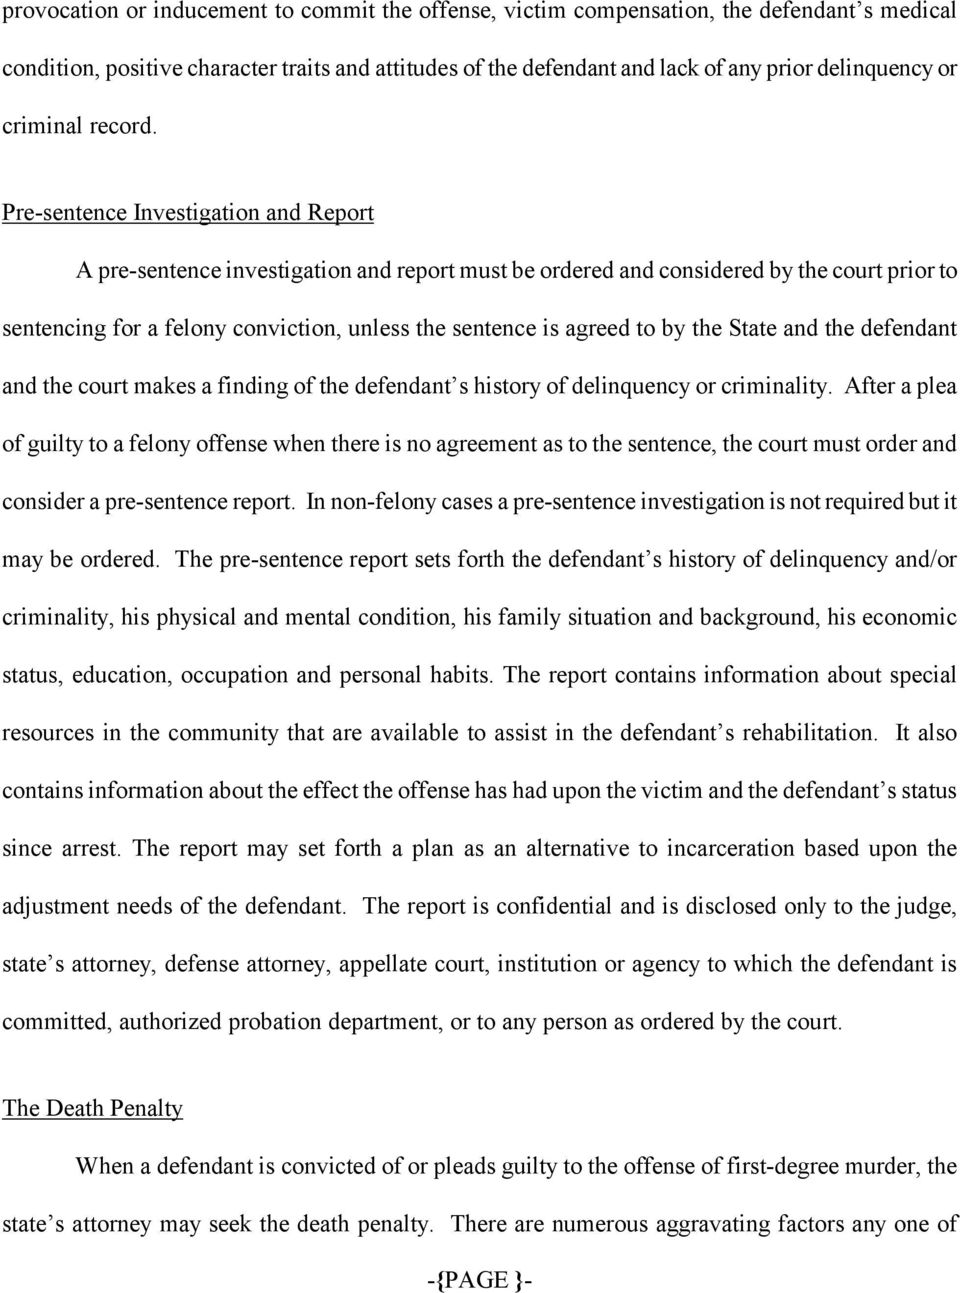 Pre-sentence Investigation and Report A pre-sentence investigation and report must be ordered and considered by the court prior to sentencing for a felony conviction, unless the sentence is agreed to